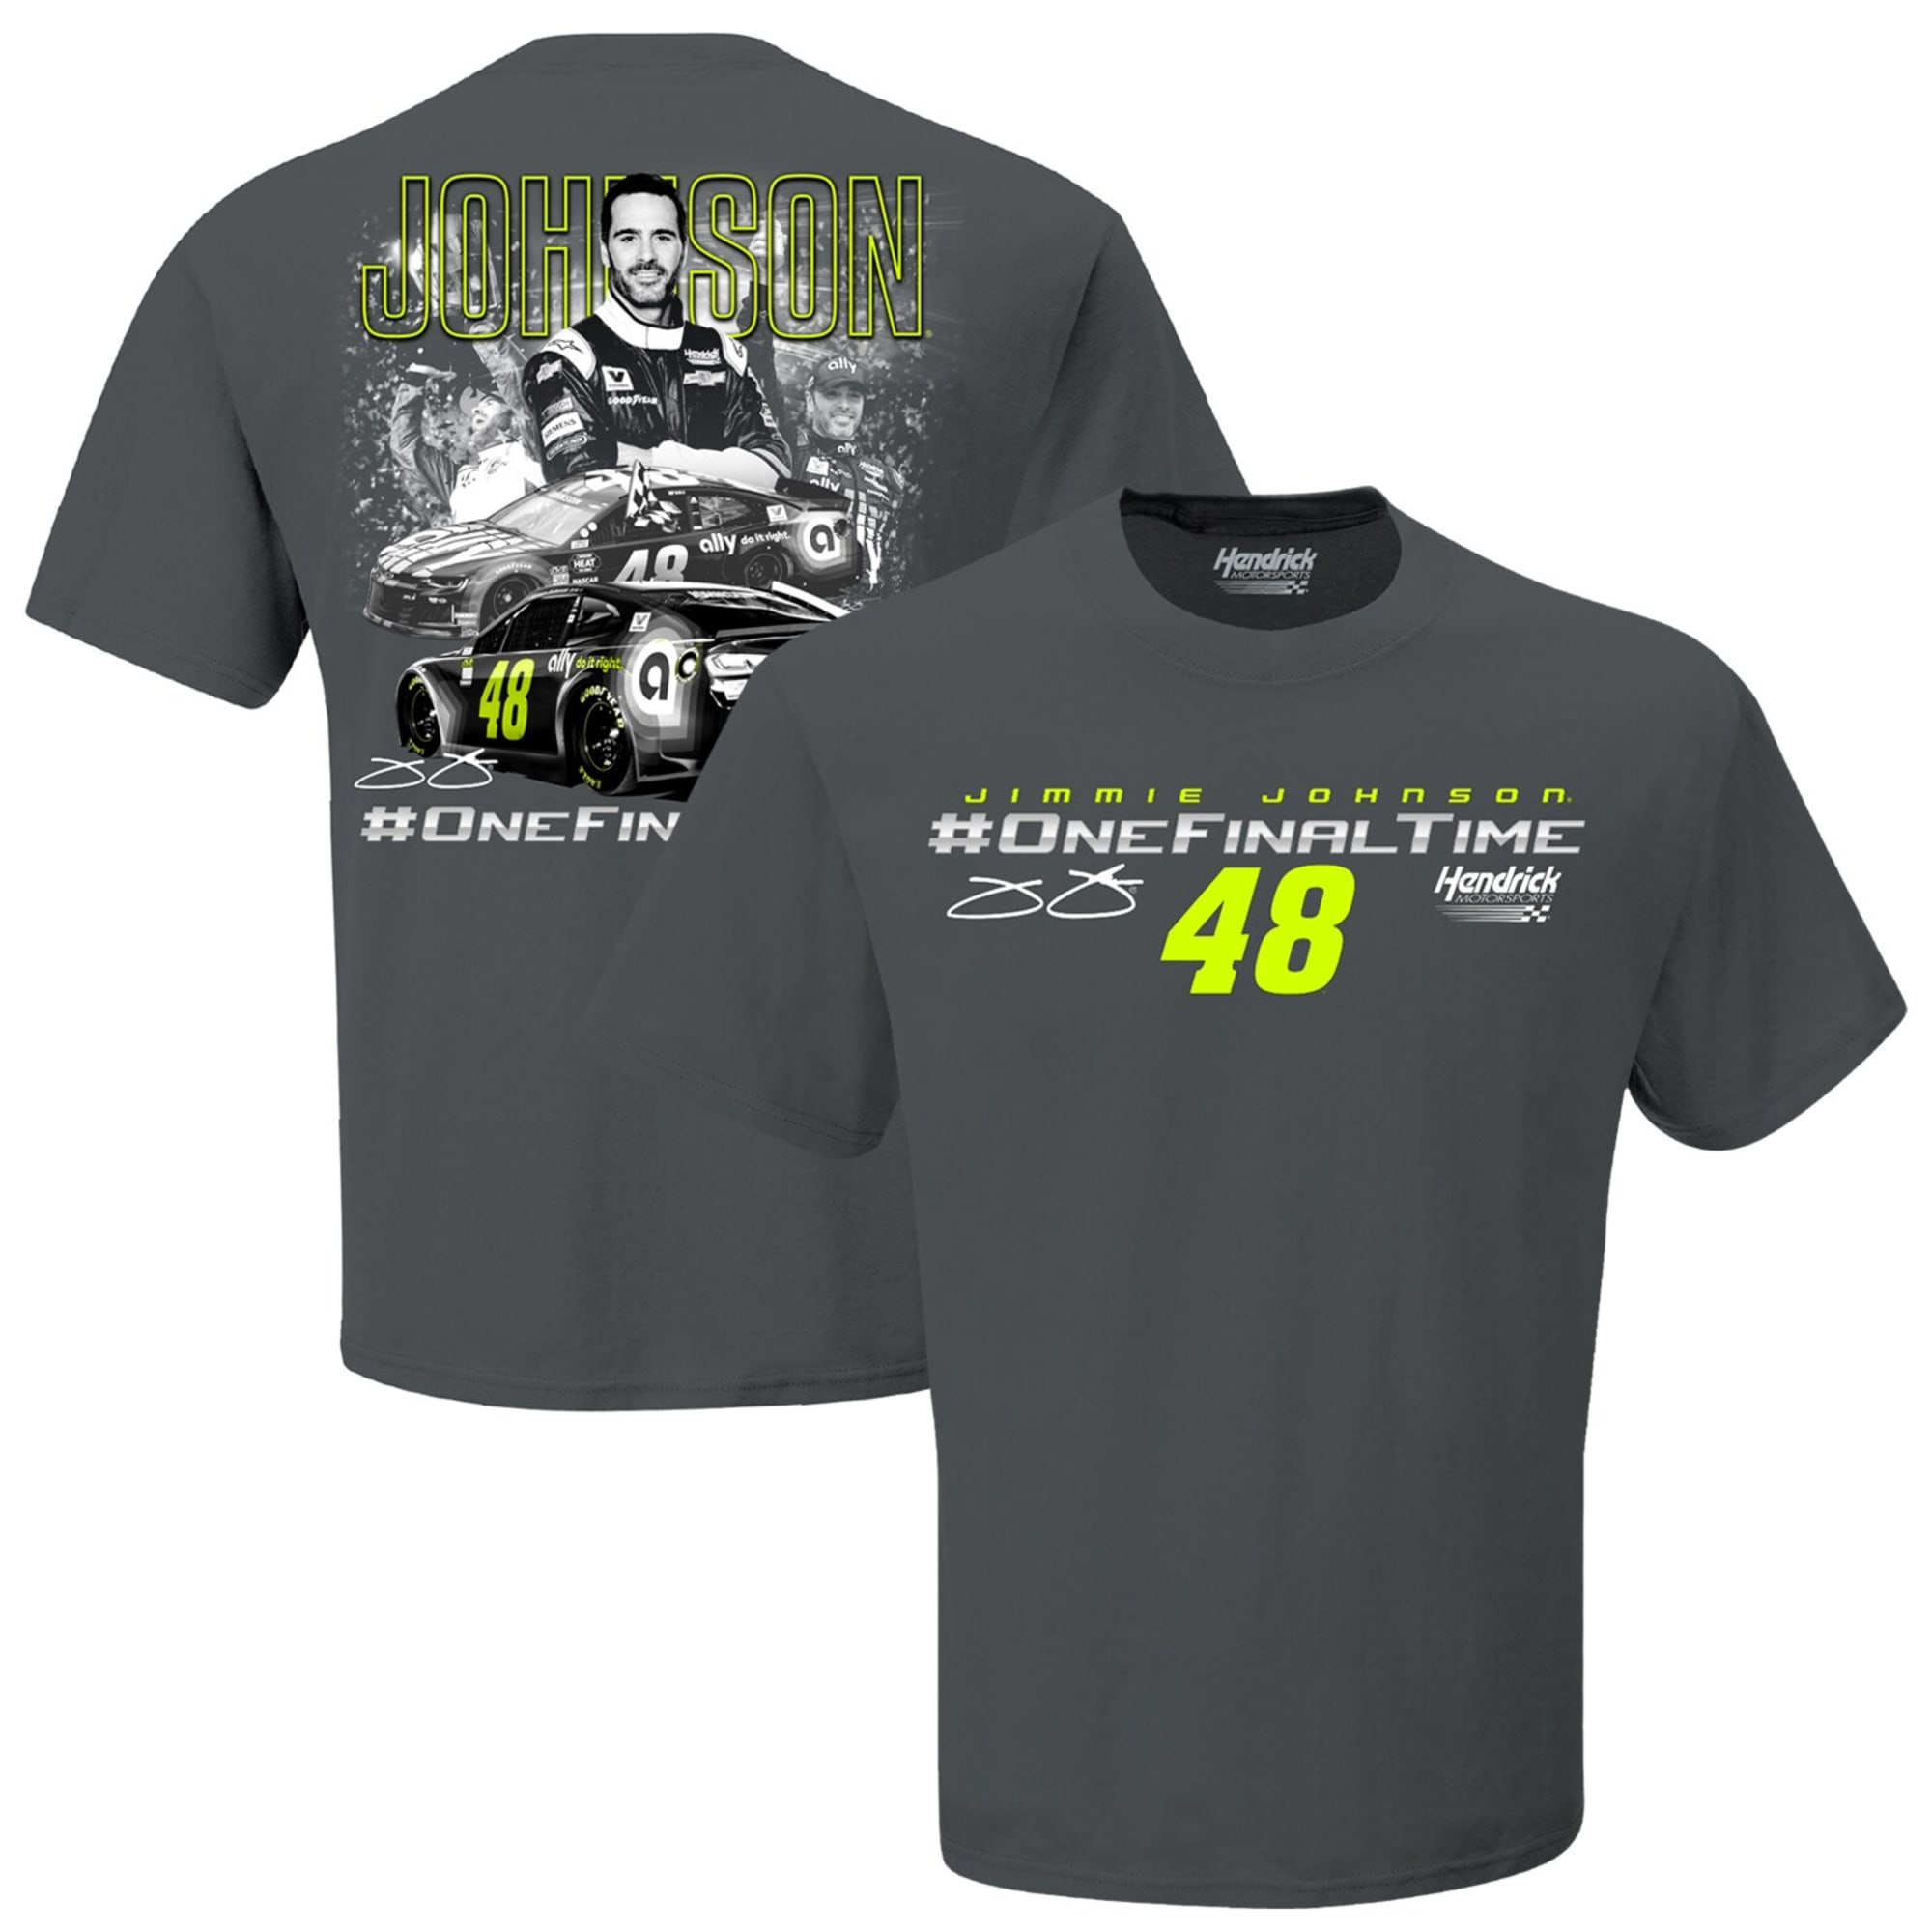 10 awesome items for NASCAR fans